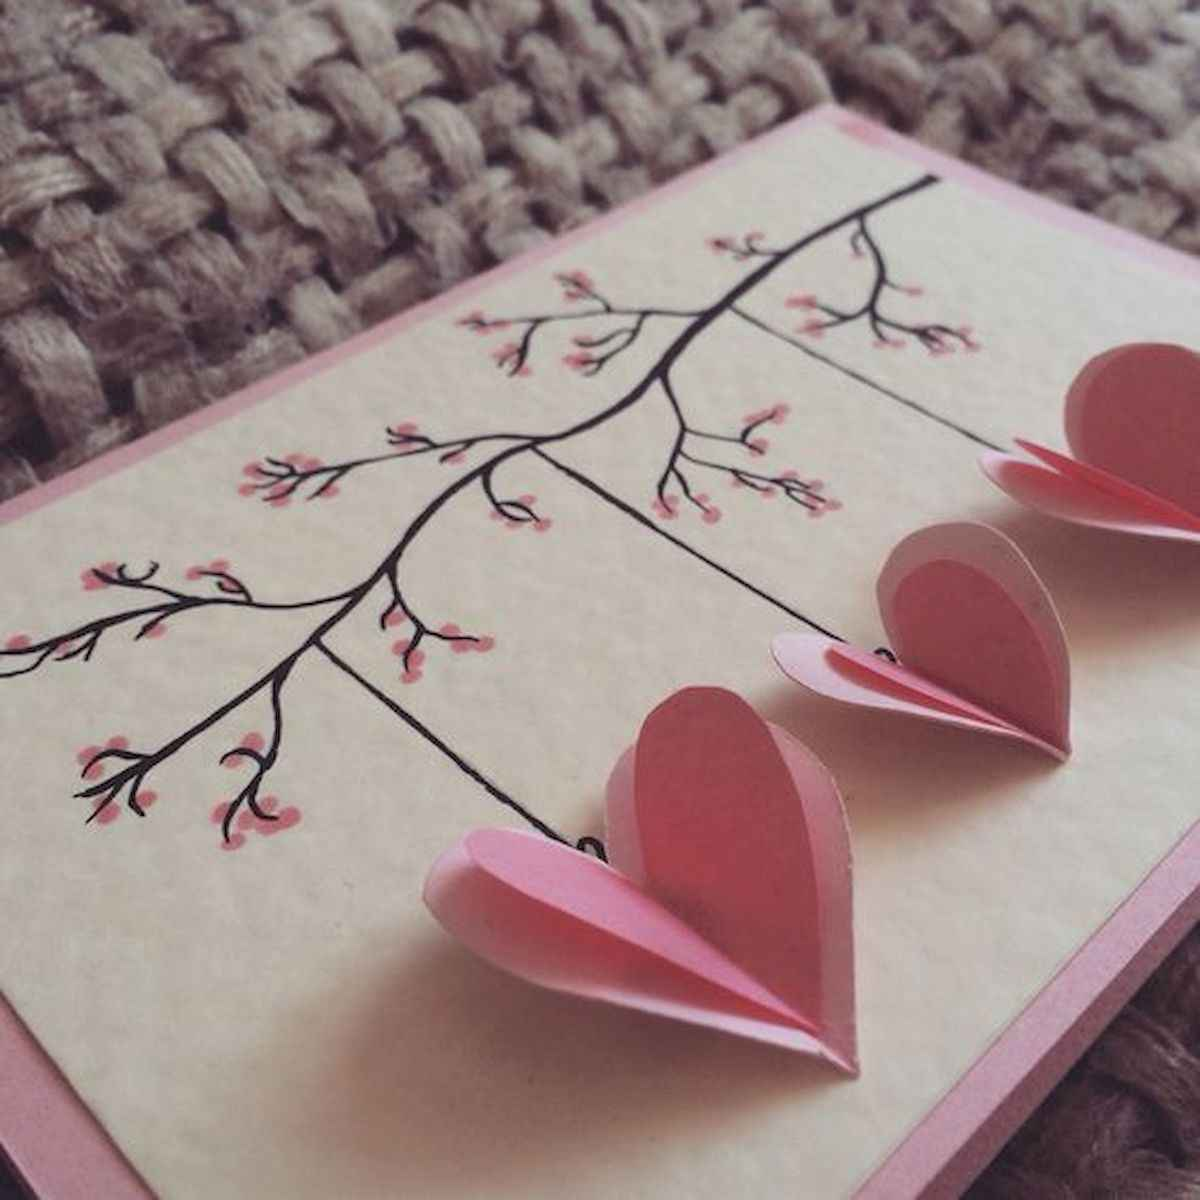 50 inspiring easy craft ideas for kids you must try (27)